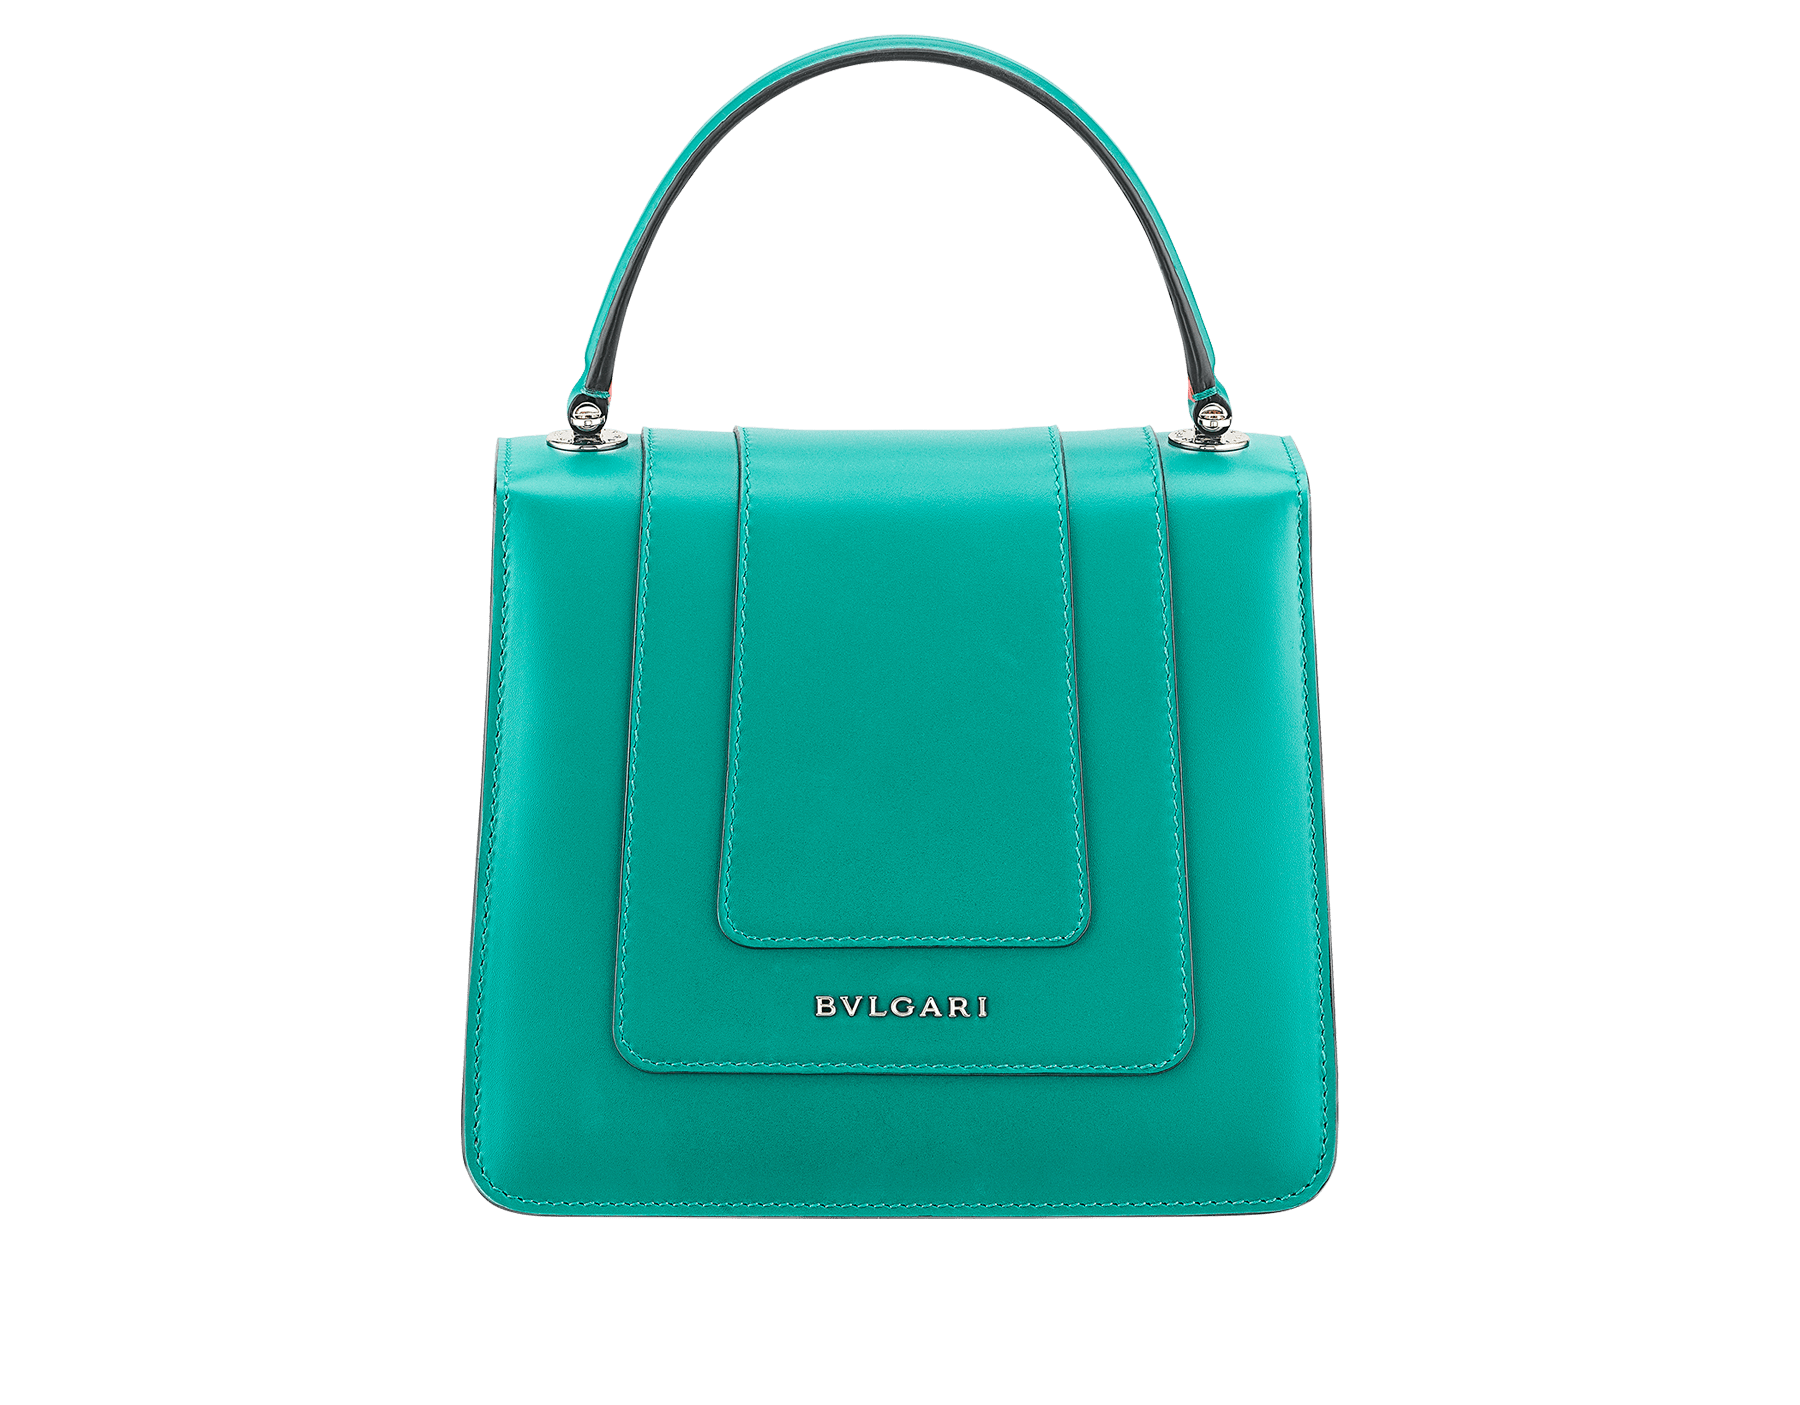 Serpenti Forever crossbody bag in tropical turquoise smooth calf leather body and sea star coral calf leather sides. Snakehead closure in light gold plated brass decorated with tropical turquoise and black enamel, and black onyx eyes. 287964 image 3